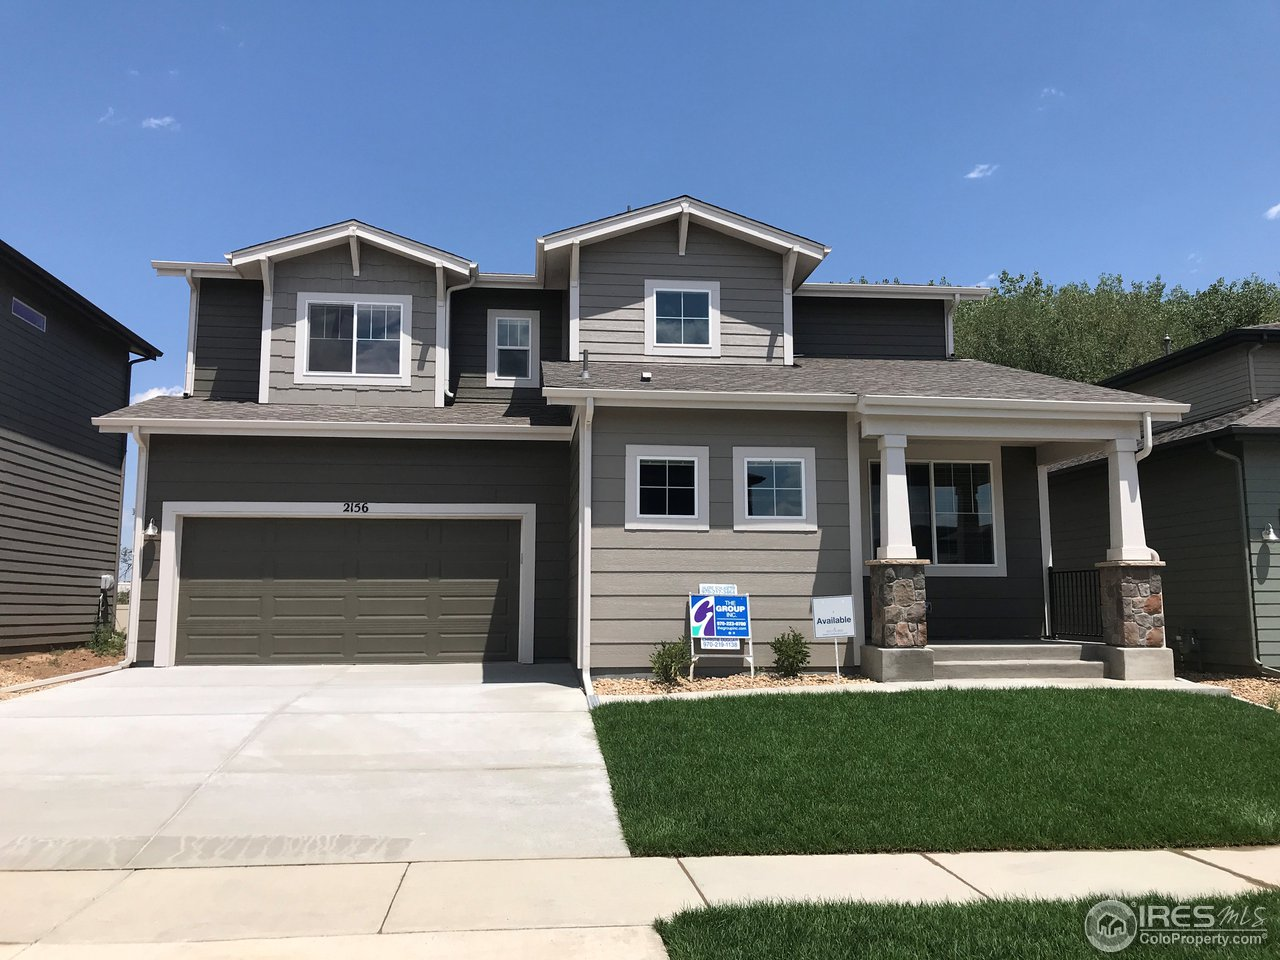 2156 Lager St, Fort Collins CO 80524